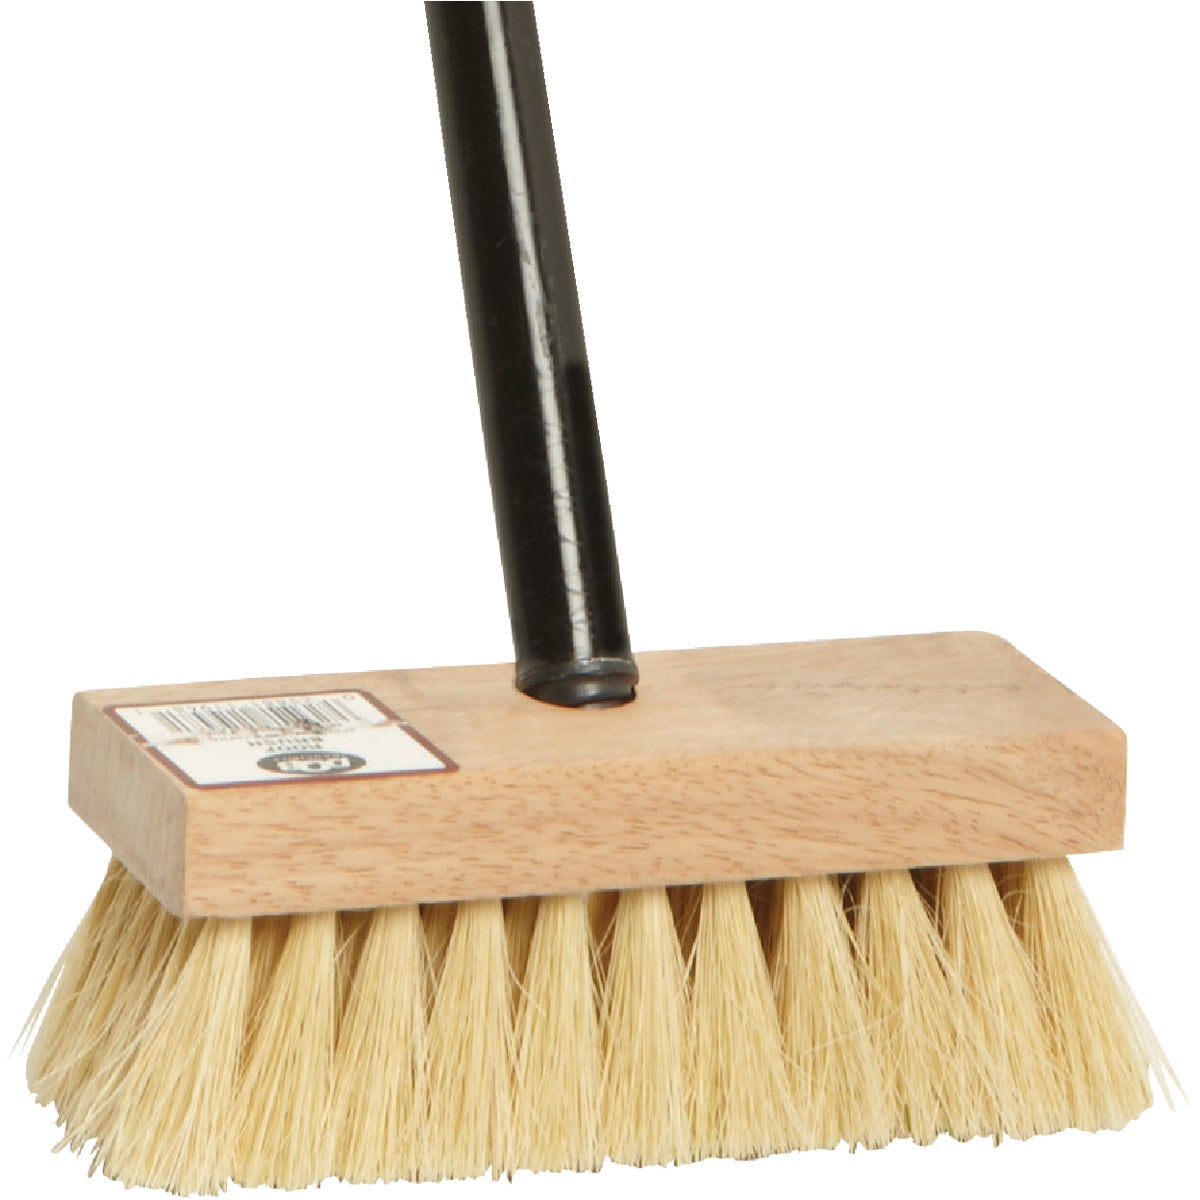 ROOF BRUSH W/HANDLE